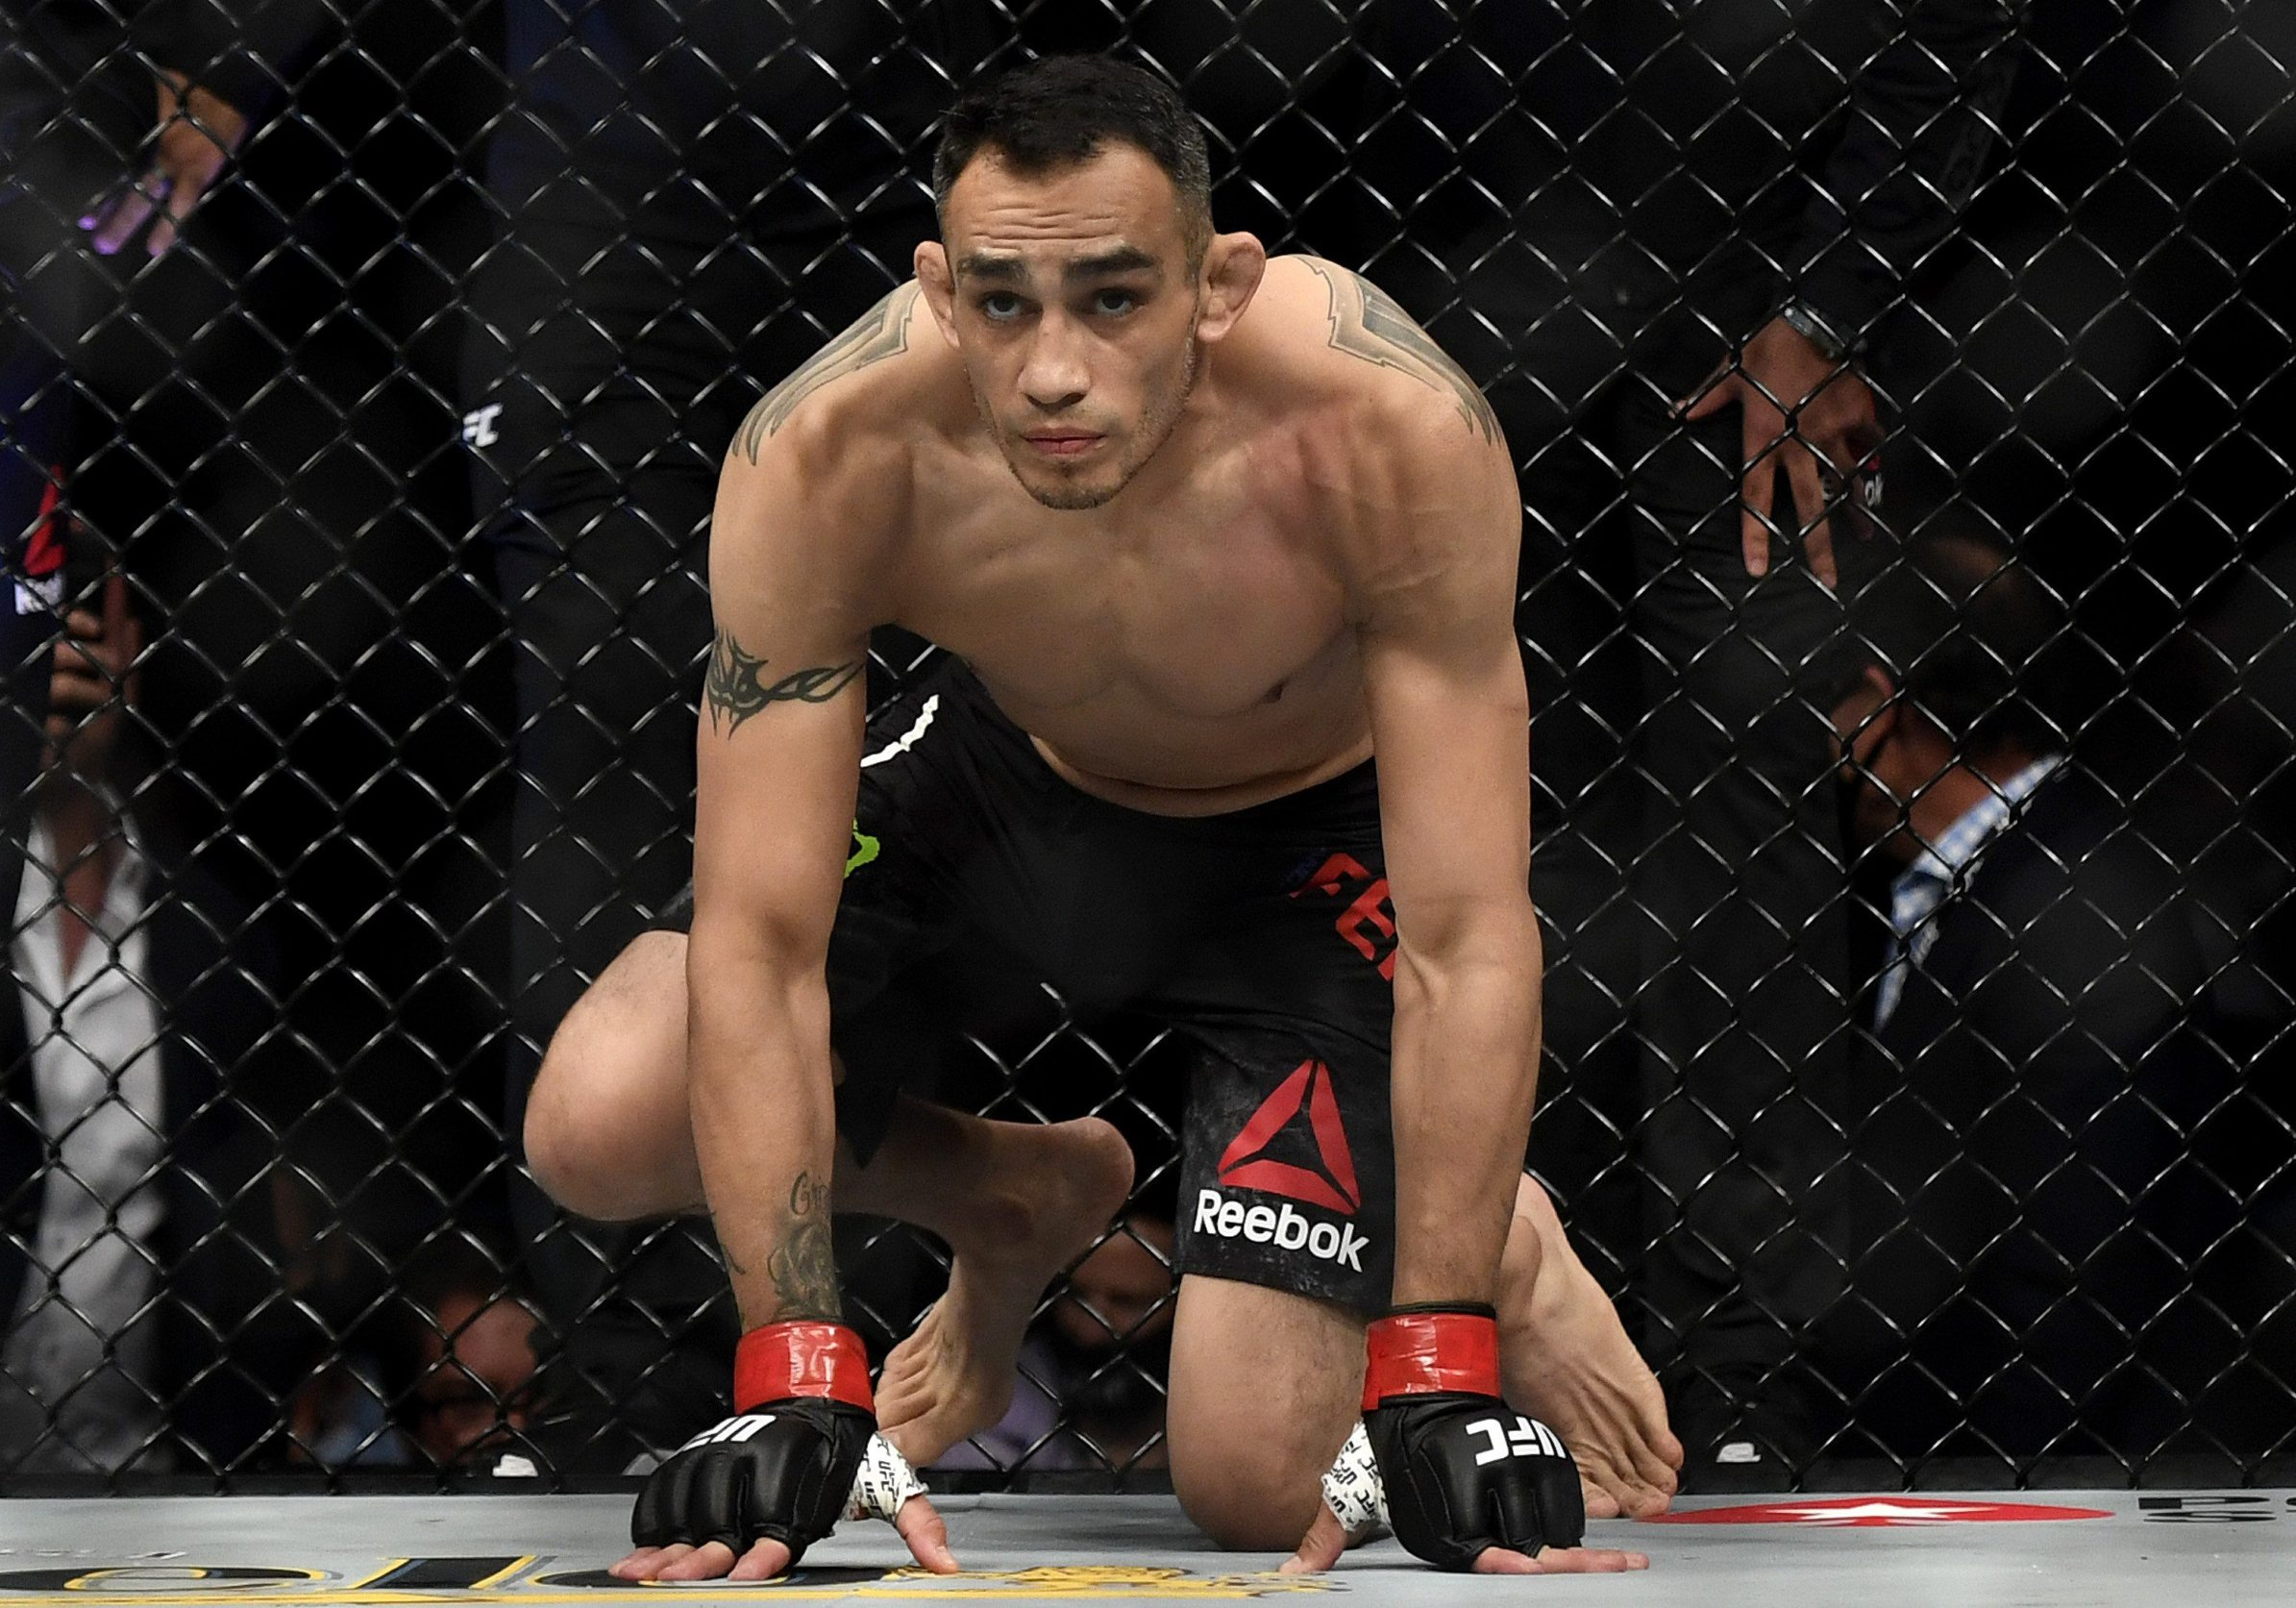 JACKSONVILLE, FLORIDA - MAY 09: Tony Ferguson of the United States prepares to fight Justin Gaethje of the United States prior to their Interim lightweight title fight during UFC 249 at VyStar Veterans Memorial Arena on May 09, 2020 in Jacksonville, Florida.   Douglas P. DeFelice/Getty Images/AFP == FOR NEWSPAPERS, INTERNET, TELCOS & TELEVISION USE ONLY ==